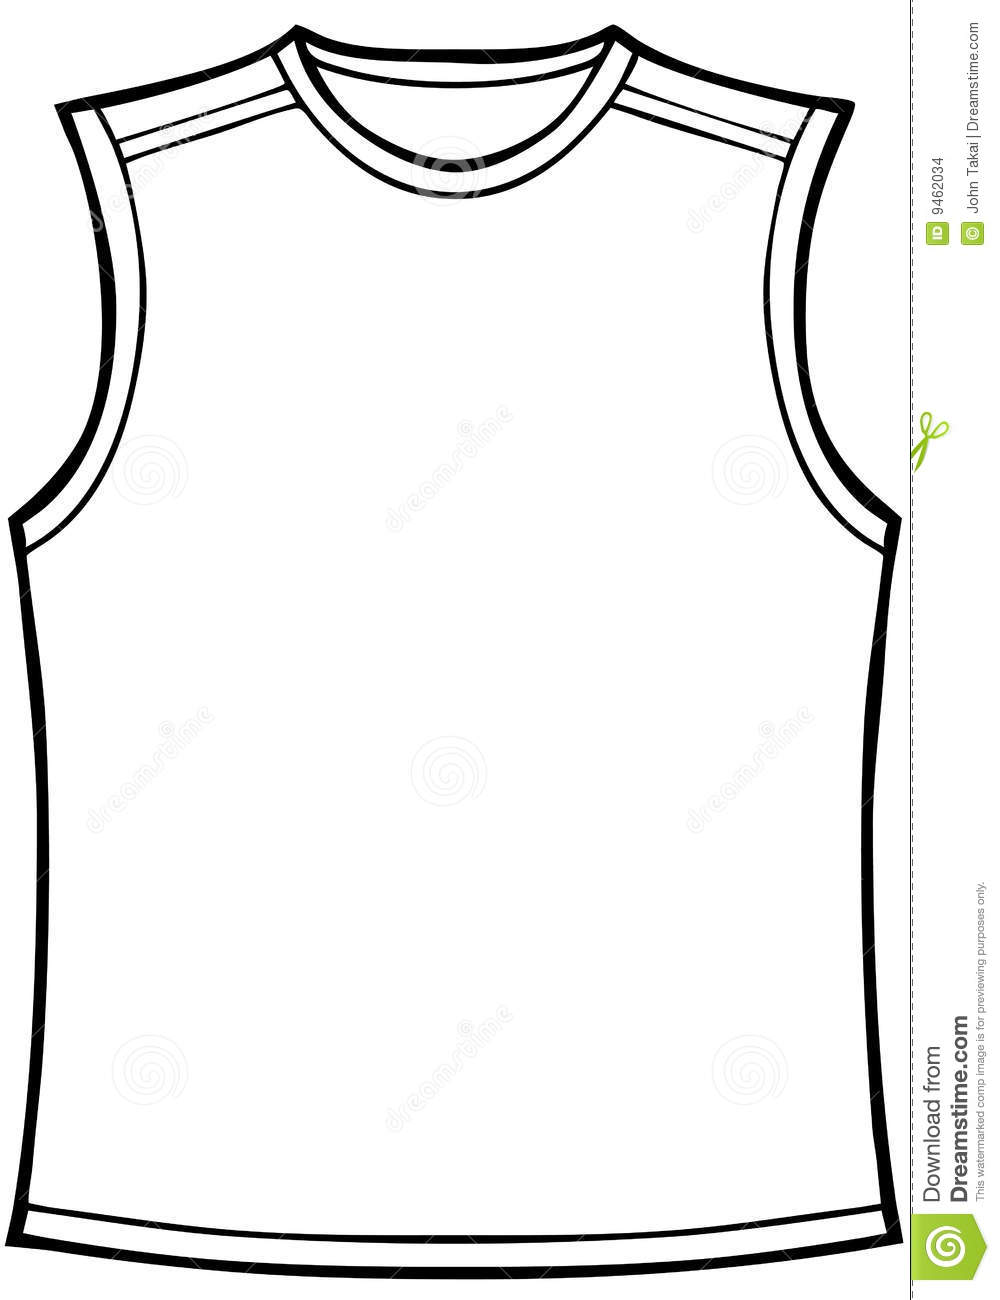 Clothing Clipart Black And White | Free download on ClipArtMag